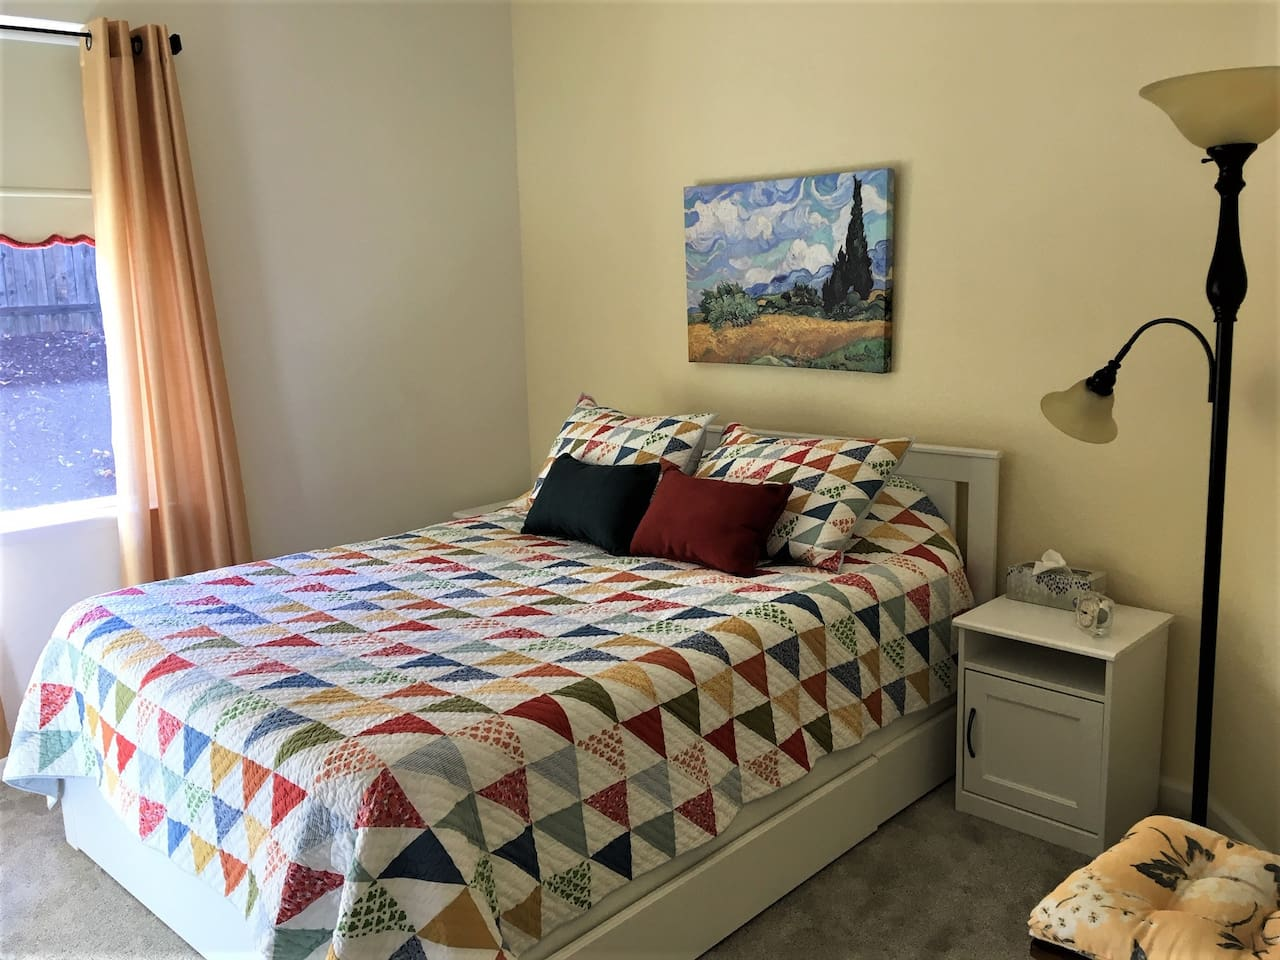 New firm but  soft queen bed,  Van Gogh art, colorful quilt.  Drawers under bed and in closet.